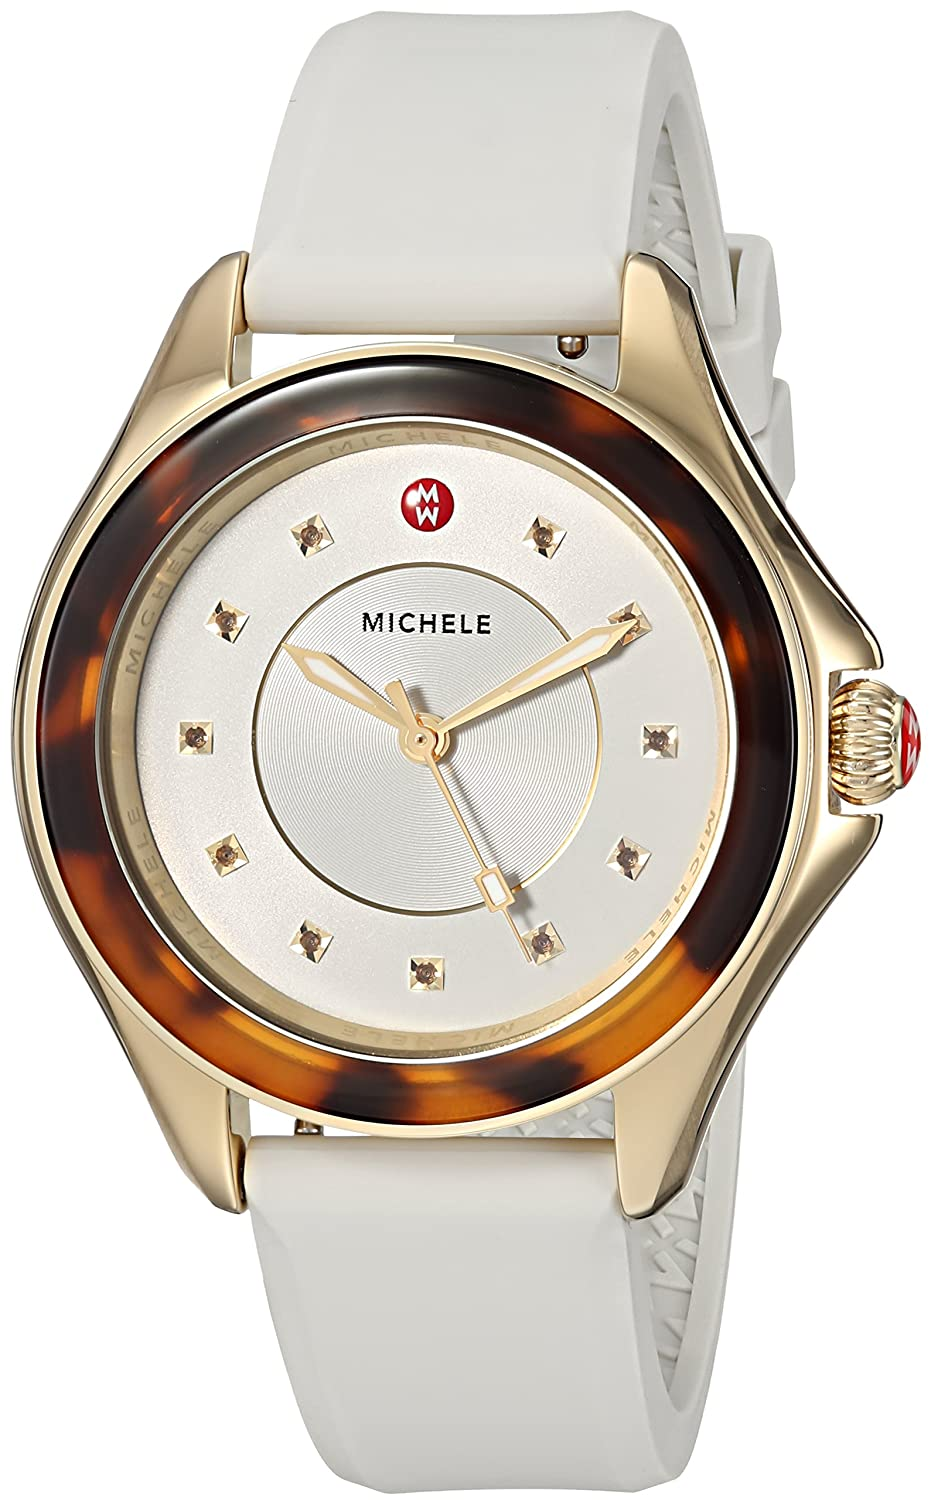 gold review michele rose diamond sail watches sport non luxury impress tag blog that